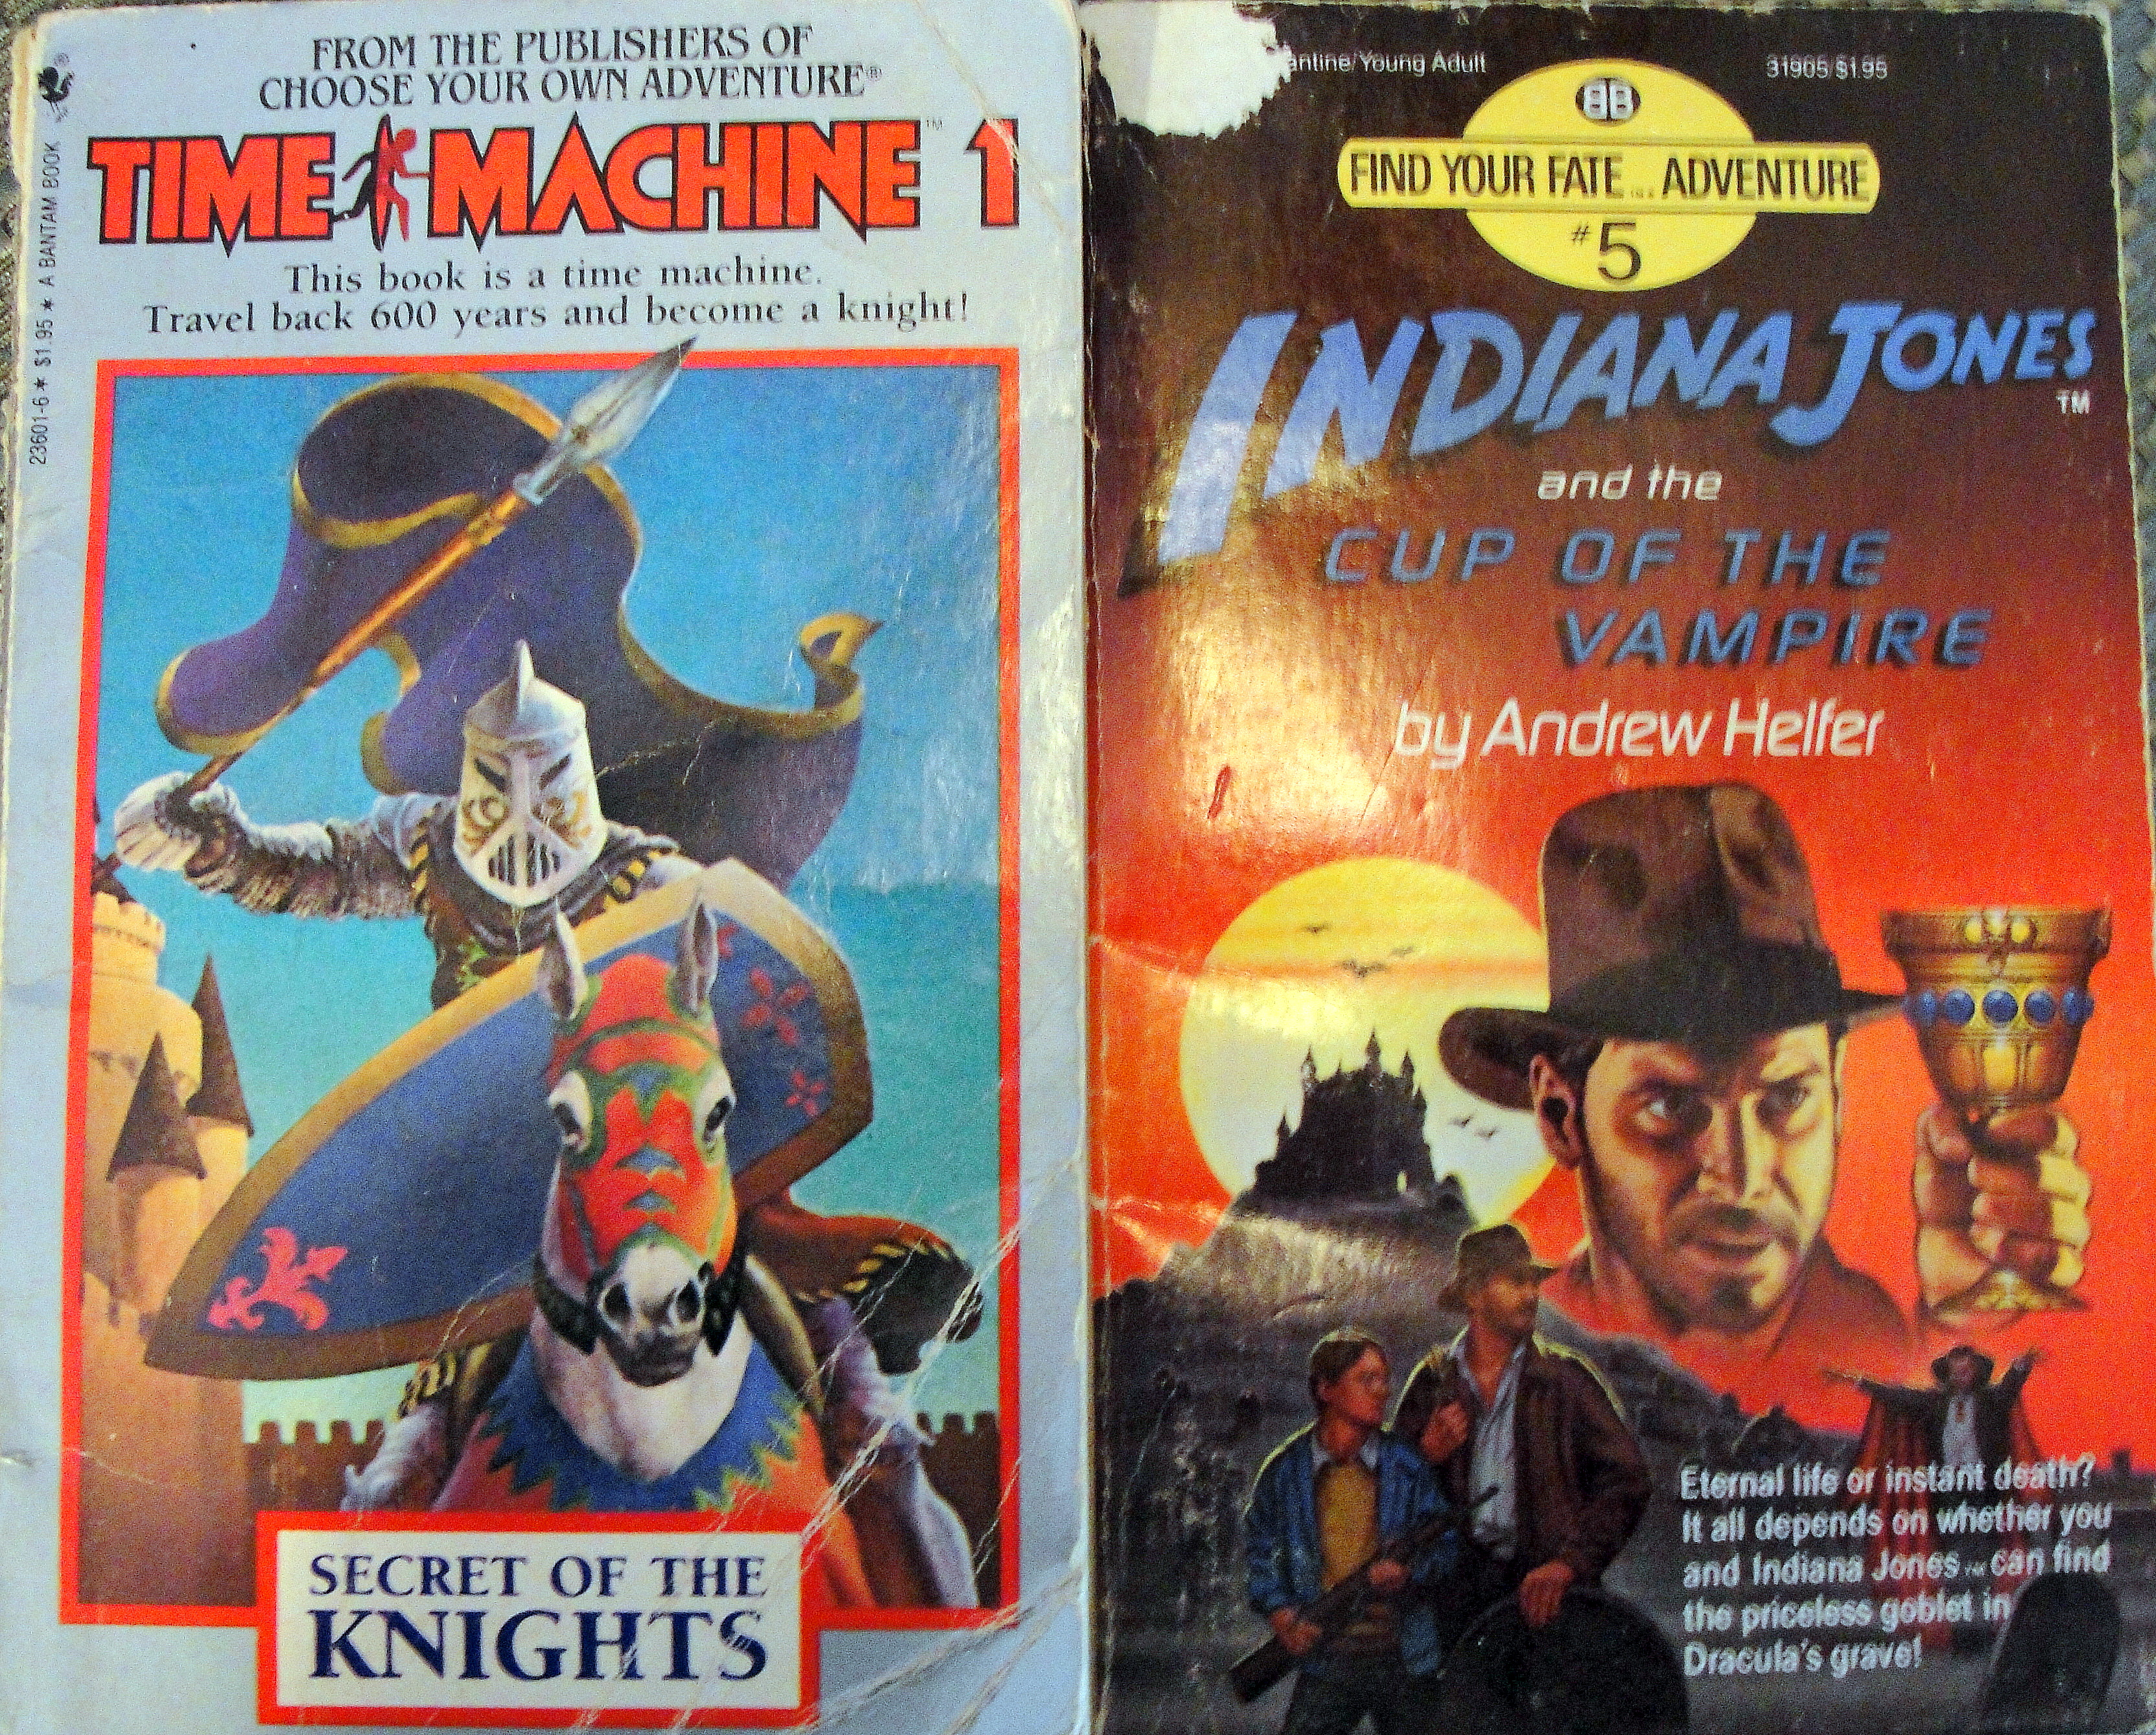 Choose your own adventure books -#18, 33,37,51 and 55